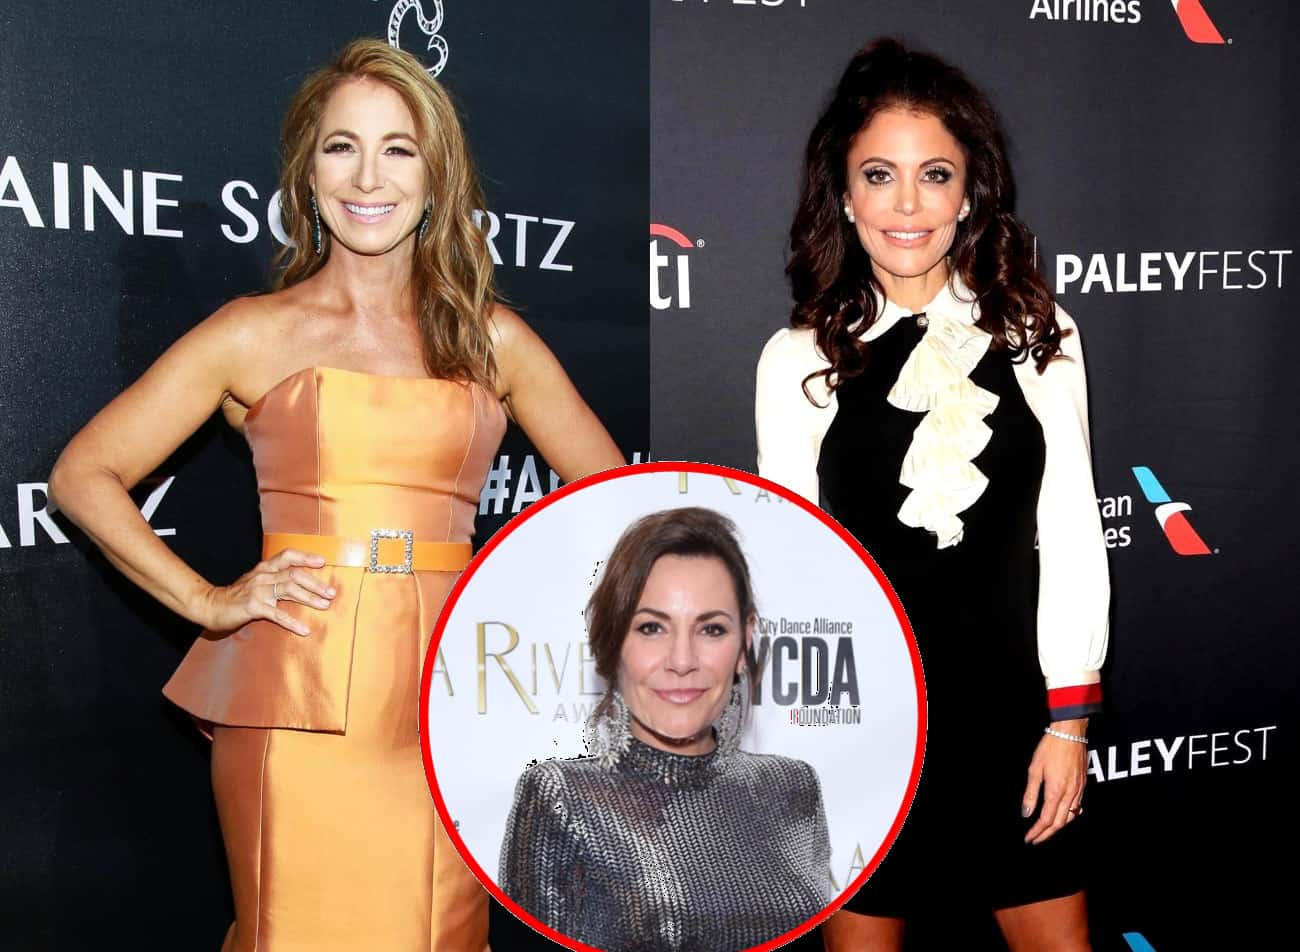 Jill Zarin Teases Possible RHONY Return After Bethenny Frankel's Exit, Does Luann de Lesseps Want Her Back?